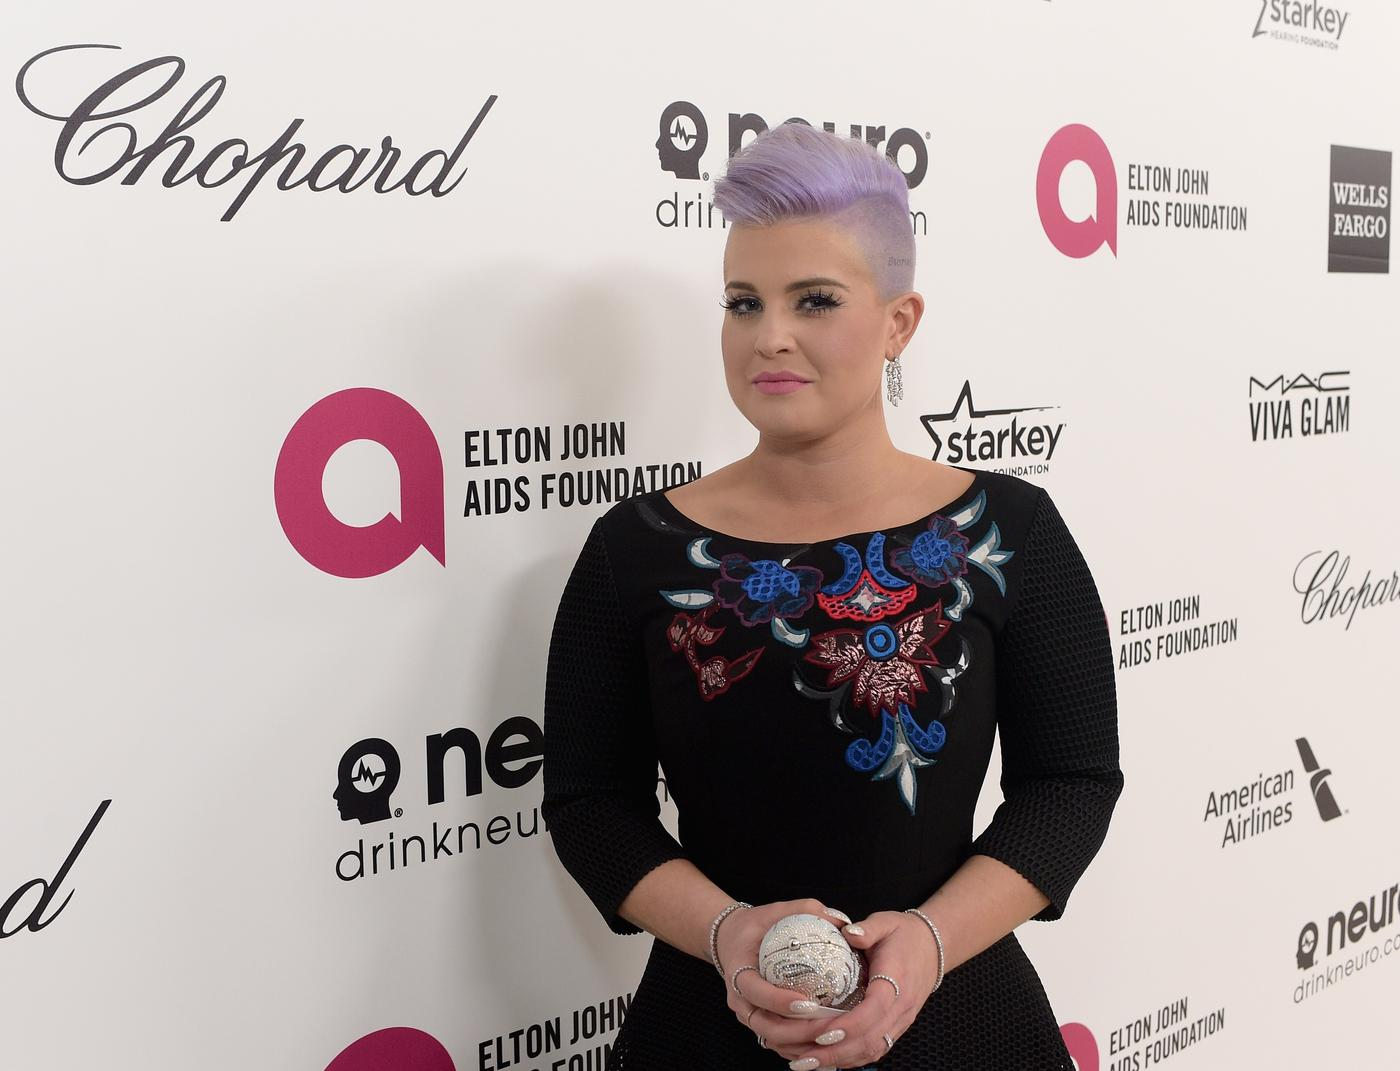 Kelly Osbourne exits E!'s Fashion Police after Zendaya racism controversy